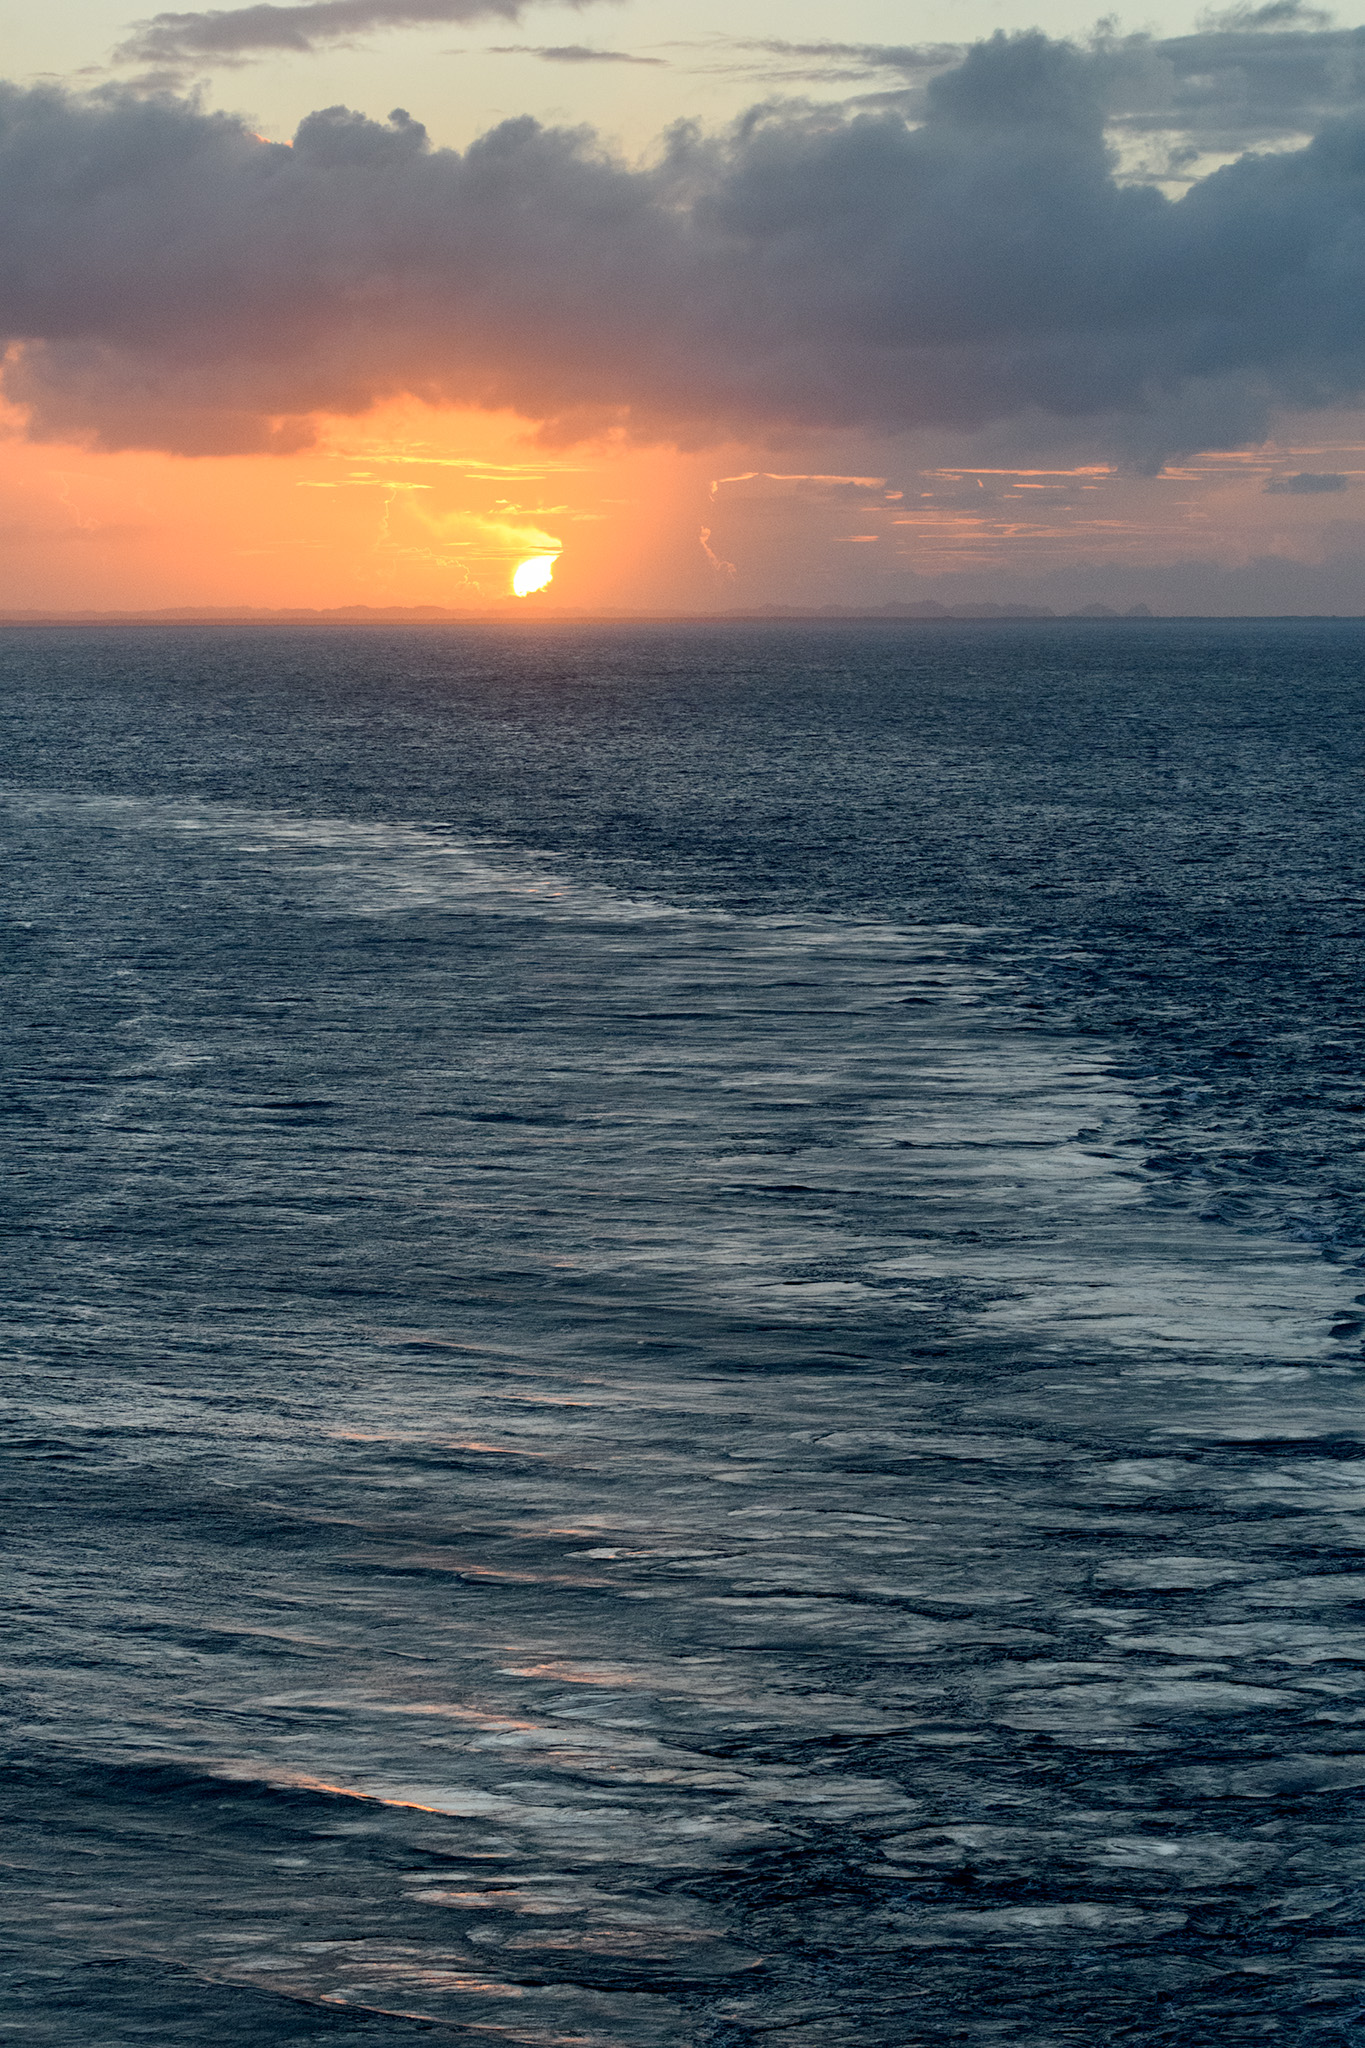 I can watch the sea go by all day, right up until the sun sets!